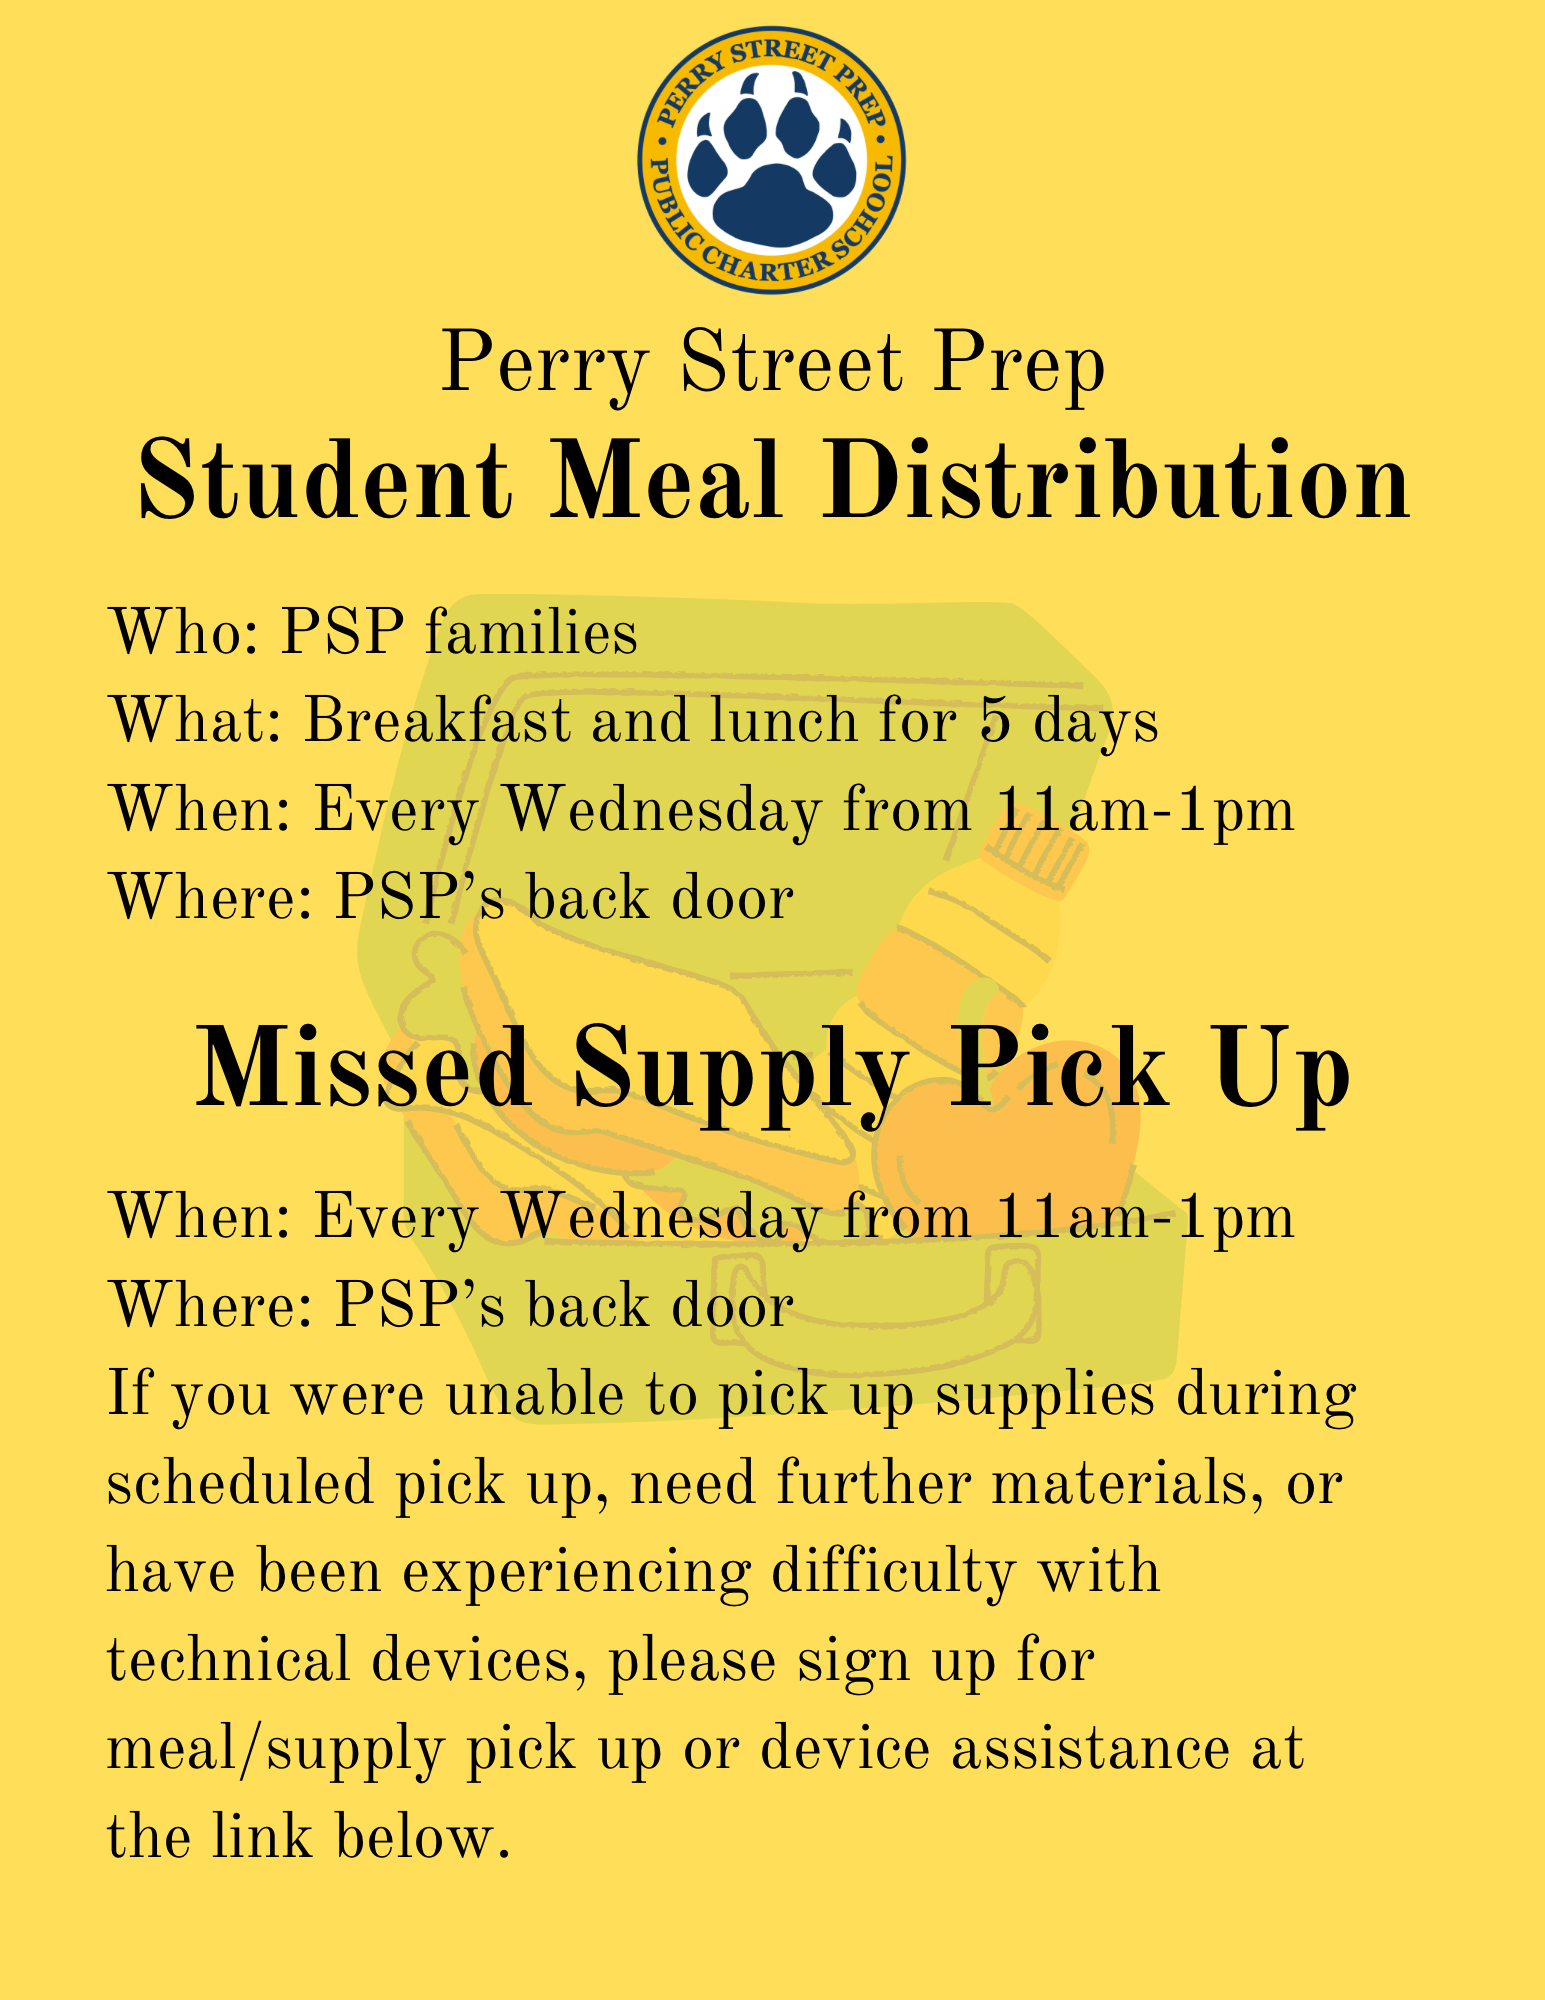 Weekly Meal and Supply Pick Up Image